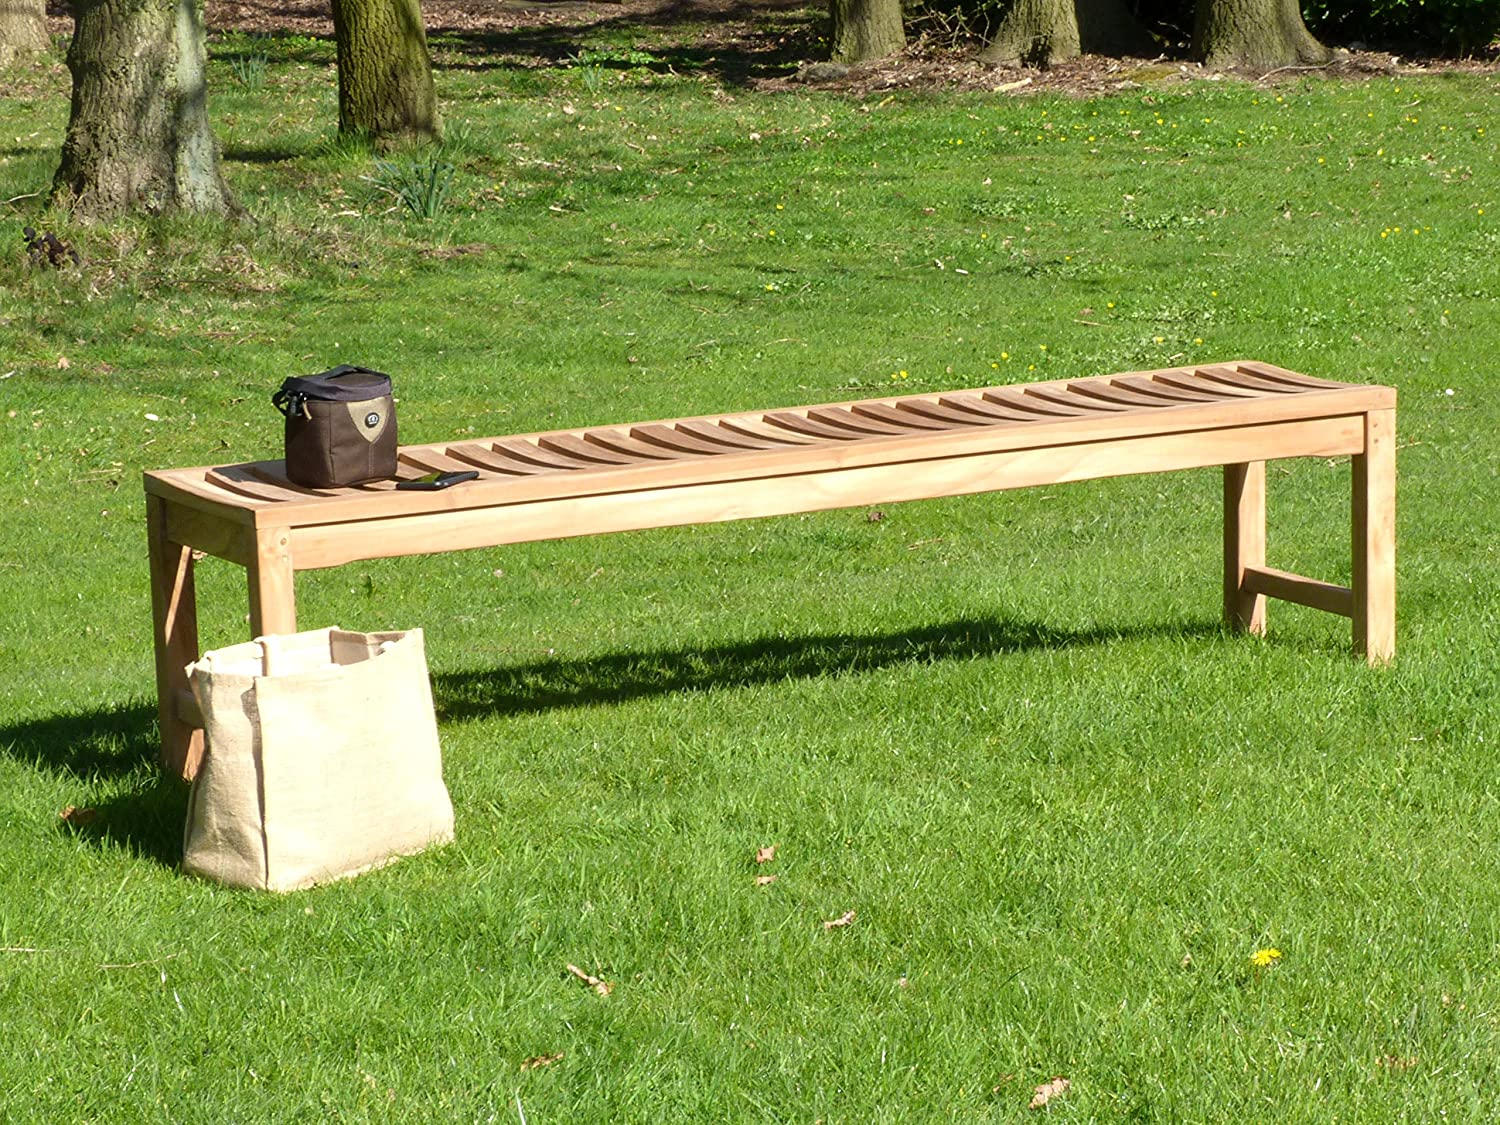 Backless Teak Wooden Garden Bench Solid Outdoor Sports Club Patio Seating Option - Choice Of Sizes (120) Sloane & Sons